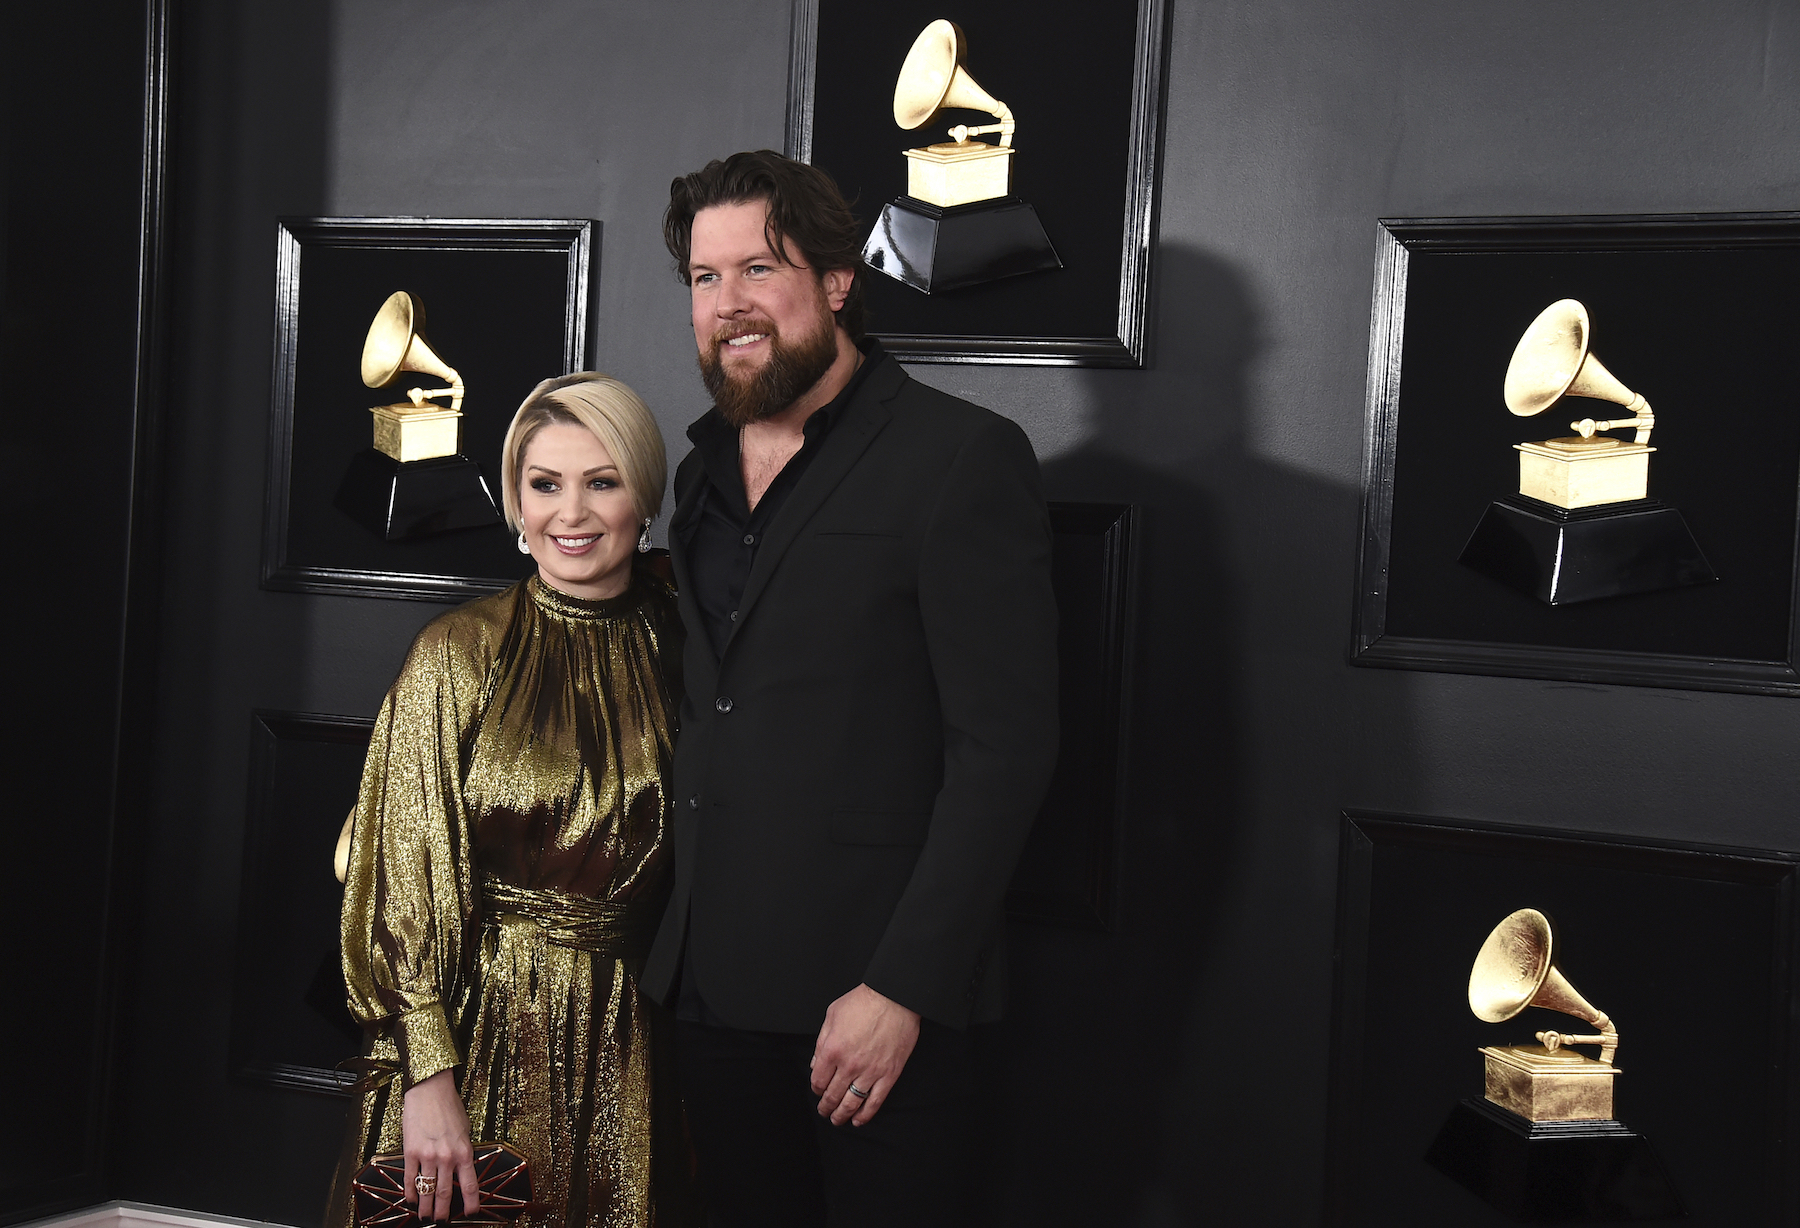 <div class='meta'><div class='origin-logo' data-origin='AP'></div><span class='caption-text' data-credit='Jordan Strauss/Invision/AP'>Zach Williams, right, and Crystal Williams arrive at the 61st annual Grammy Awards at the Staples Center on Sunday, Feb. 10, 2019, in Los Angeles.</span></div>